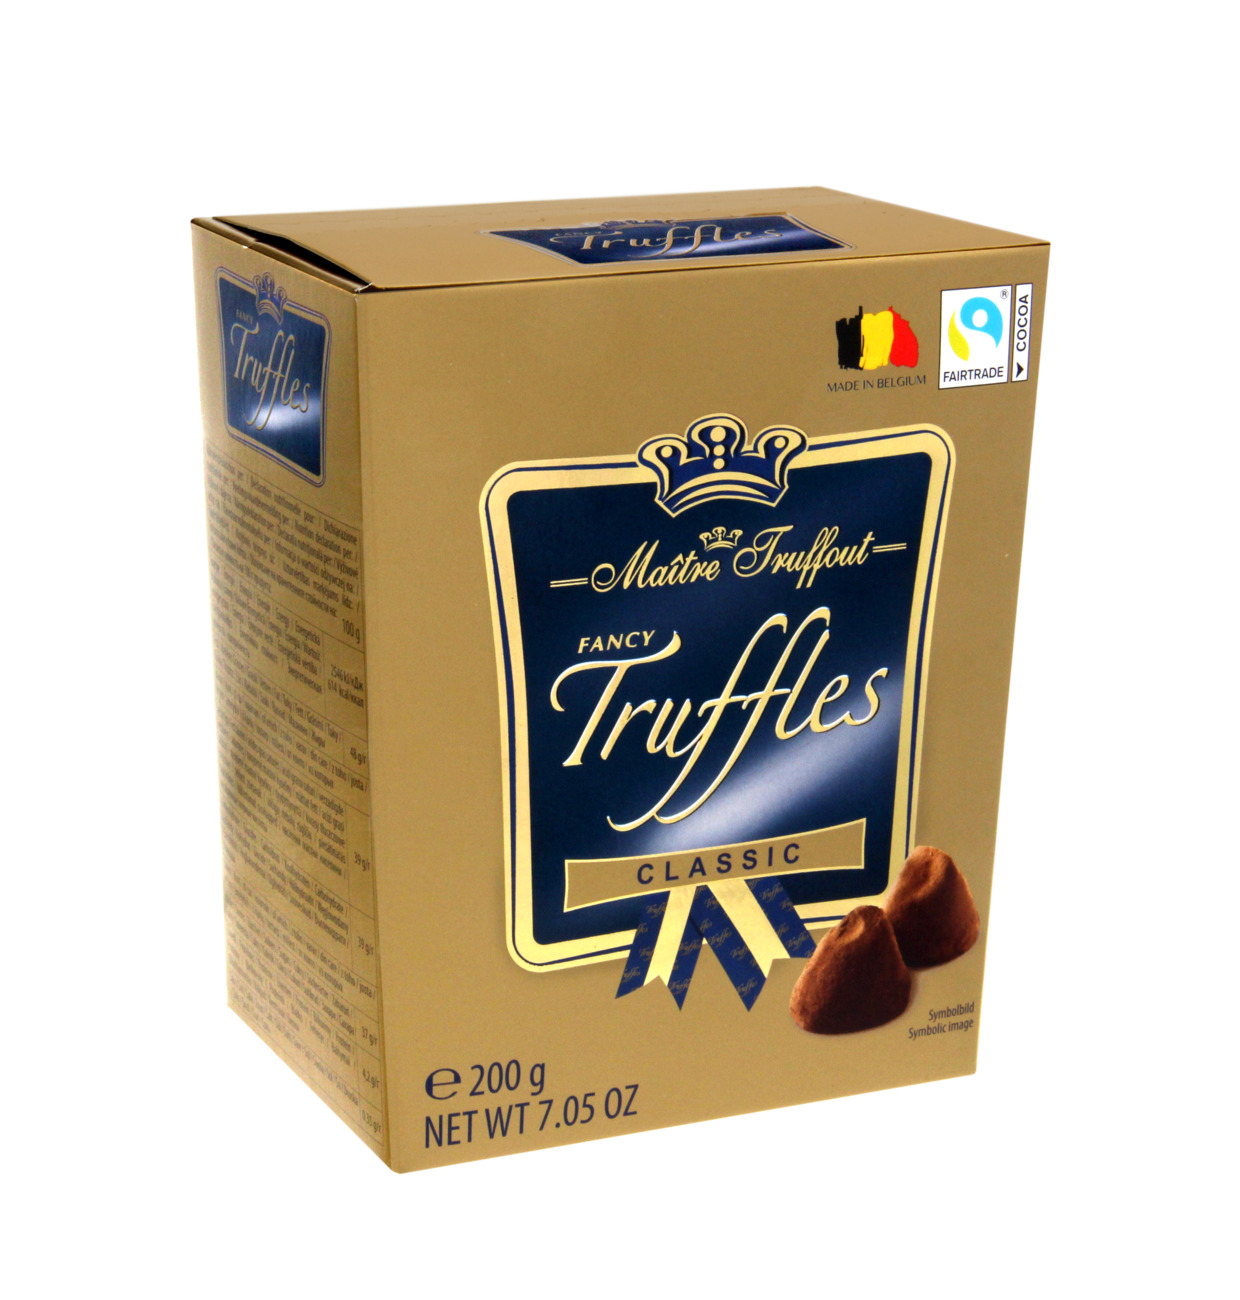 Fancy Gold Truffles Classic